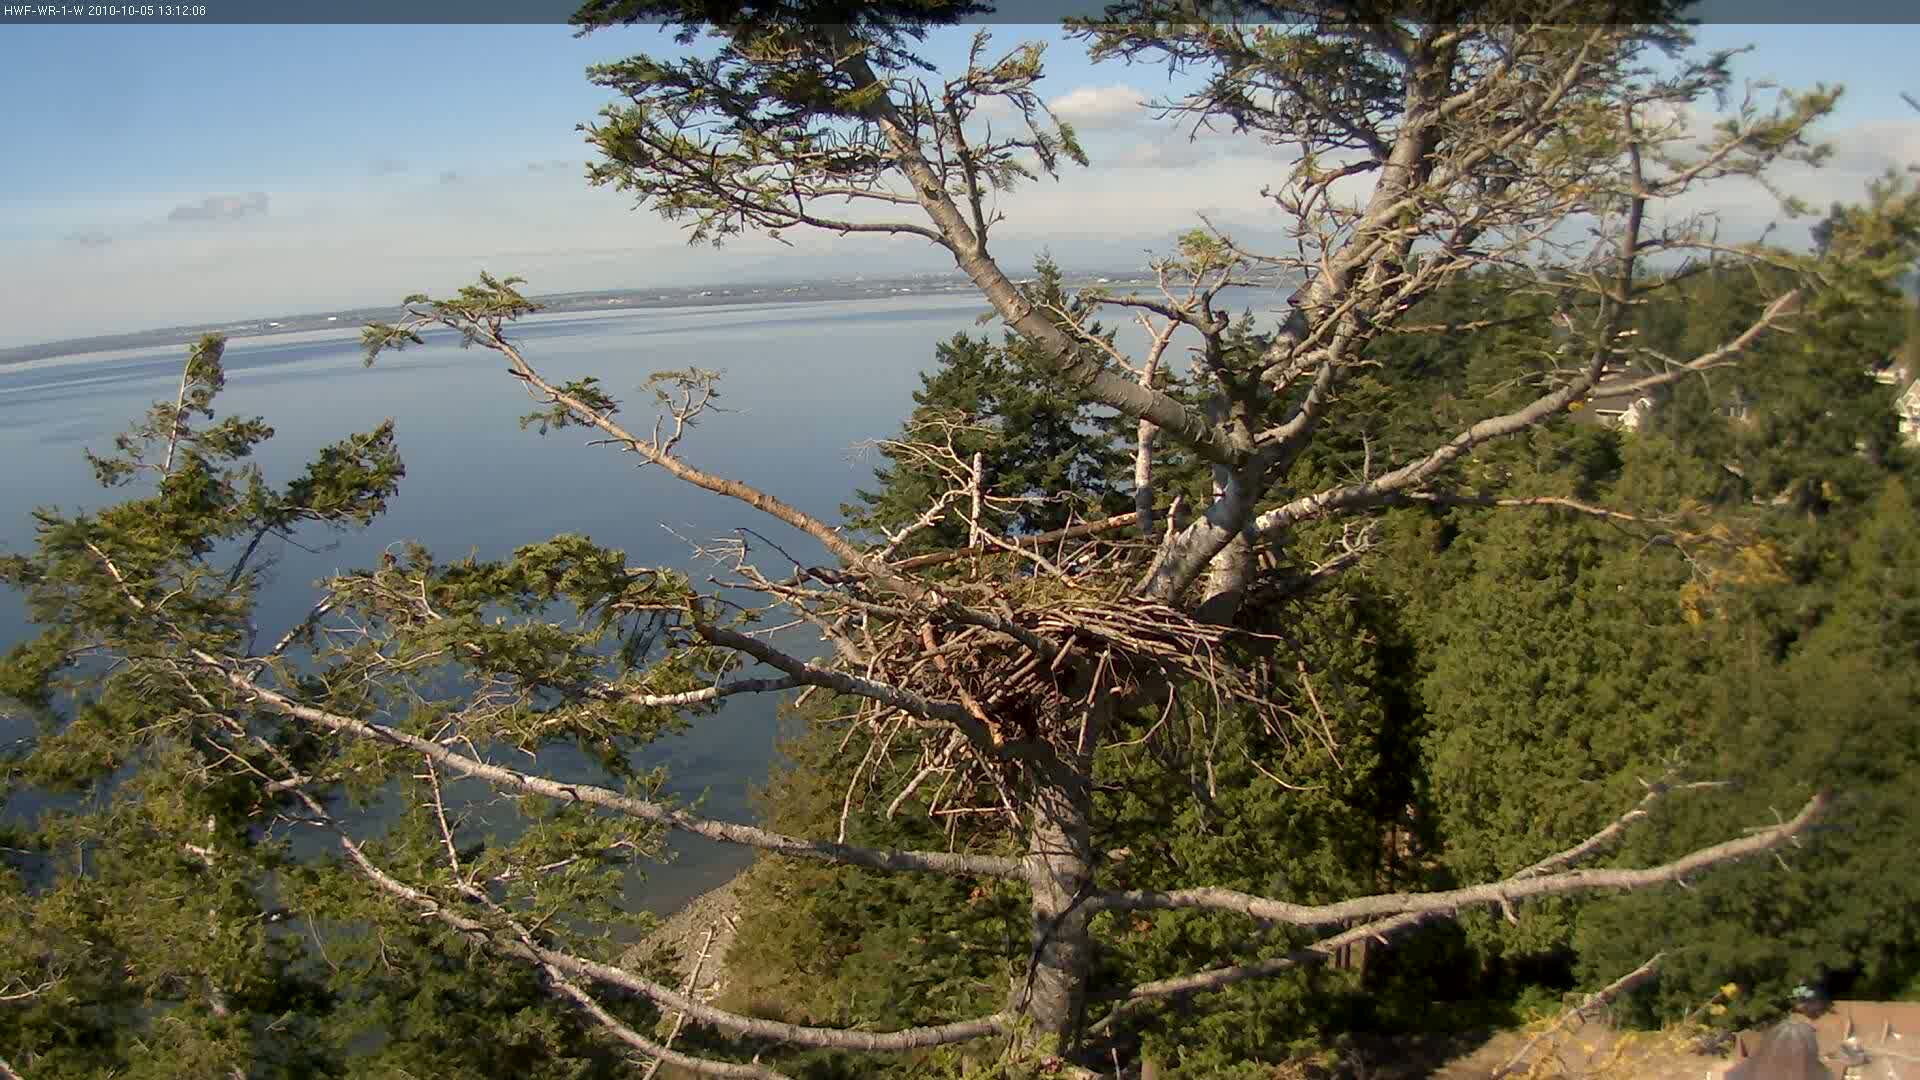 No eagles in this one - but a lovely vista from the camera position overlooking Boundary Bay